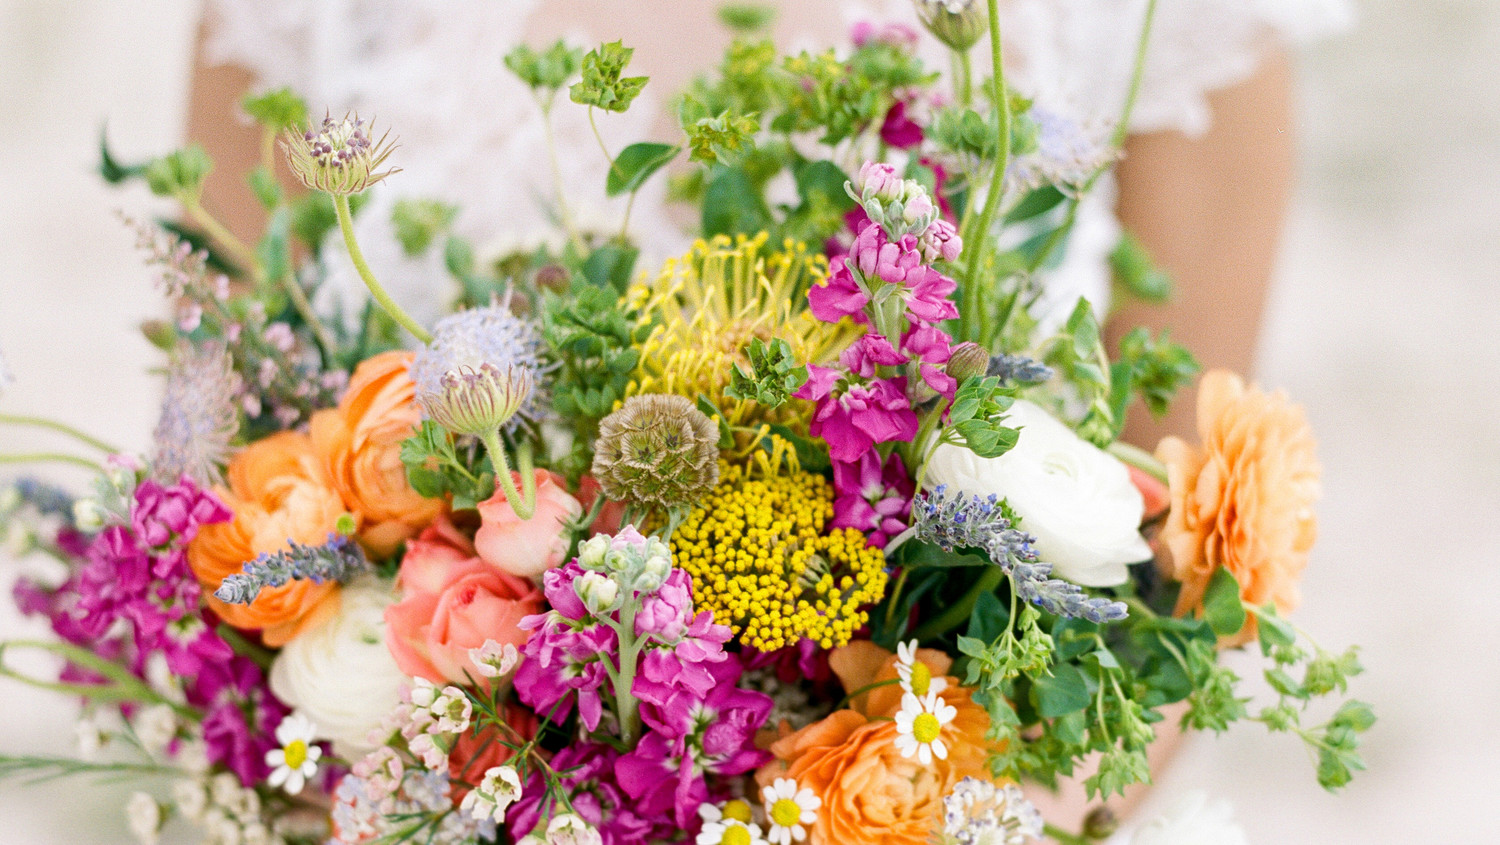 The best and worst wedding flowers for brides with allergies the best and worst wedding flowers for brides with allergies martha stewart weddings izmirmasajfo Gallery